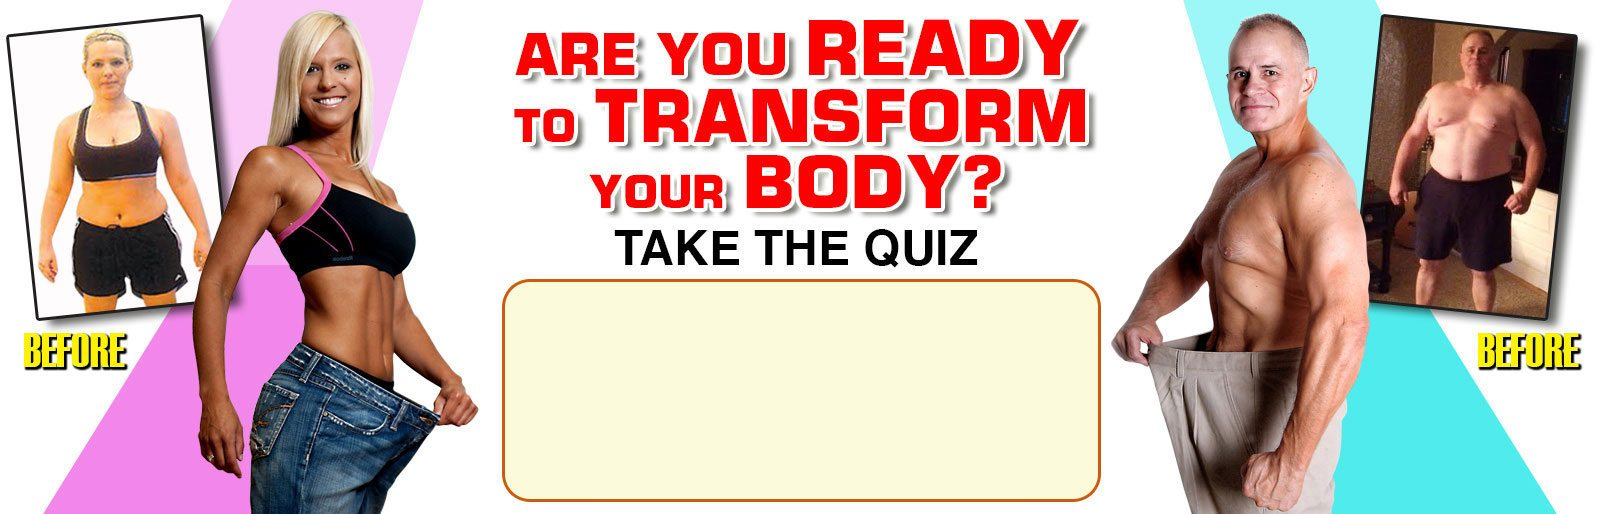 Are you Ready to Transform? Take the HitchFit Quiz and Find Out!